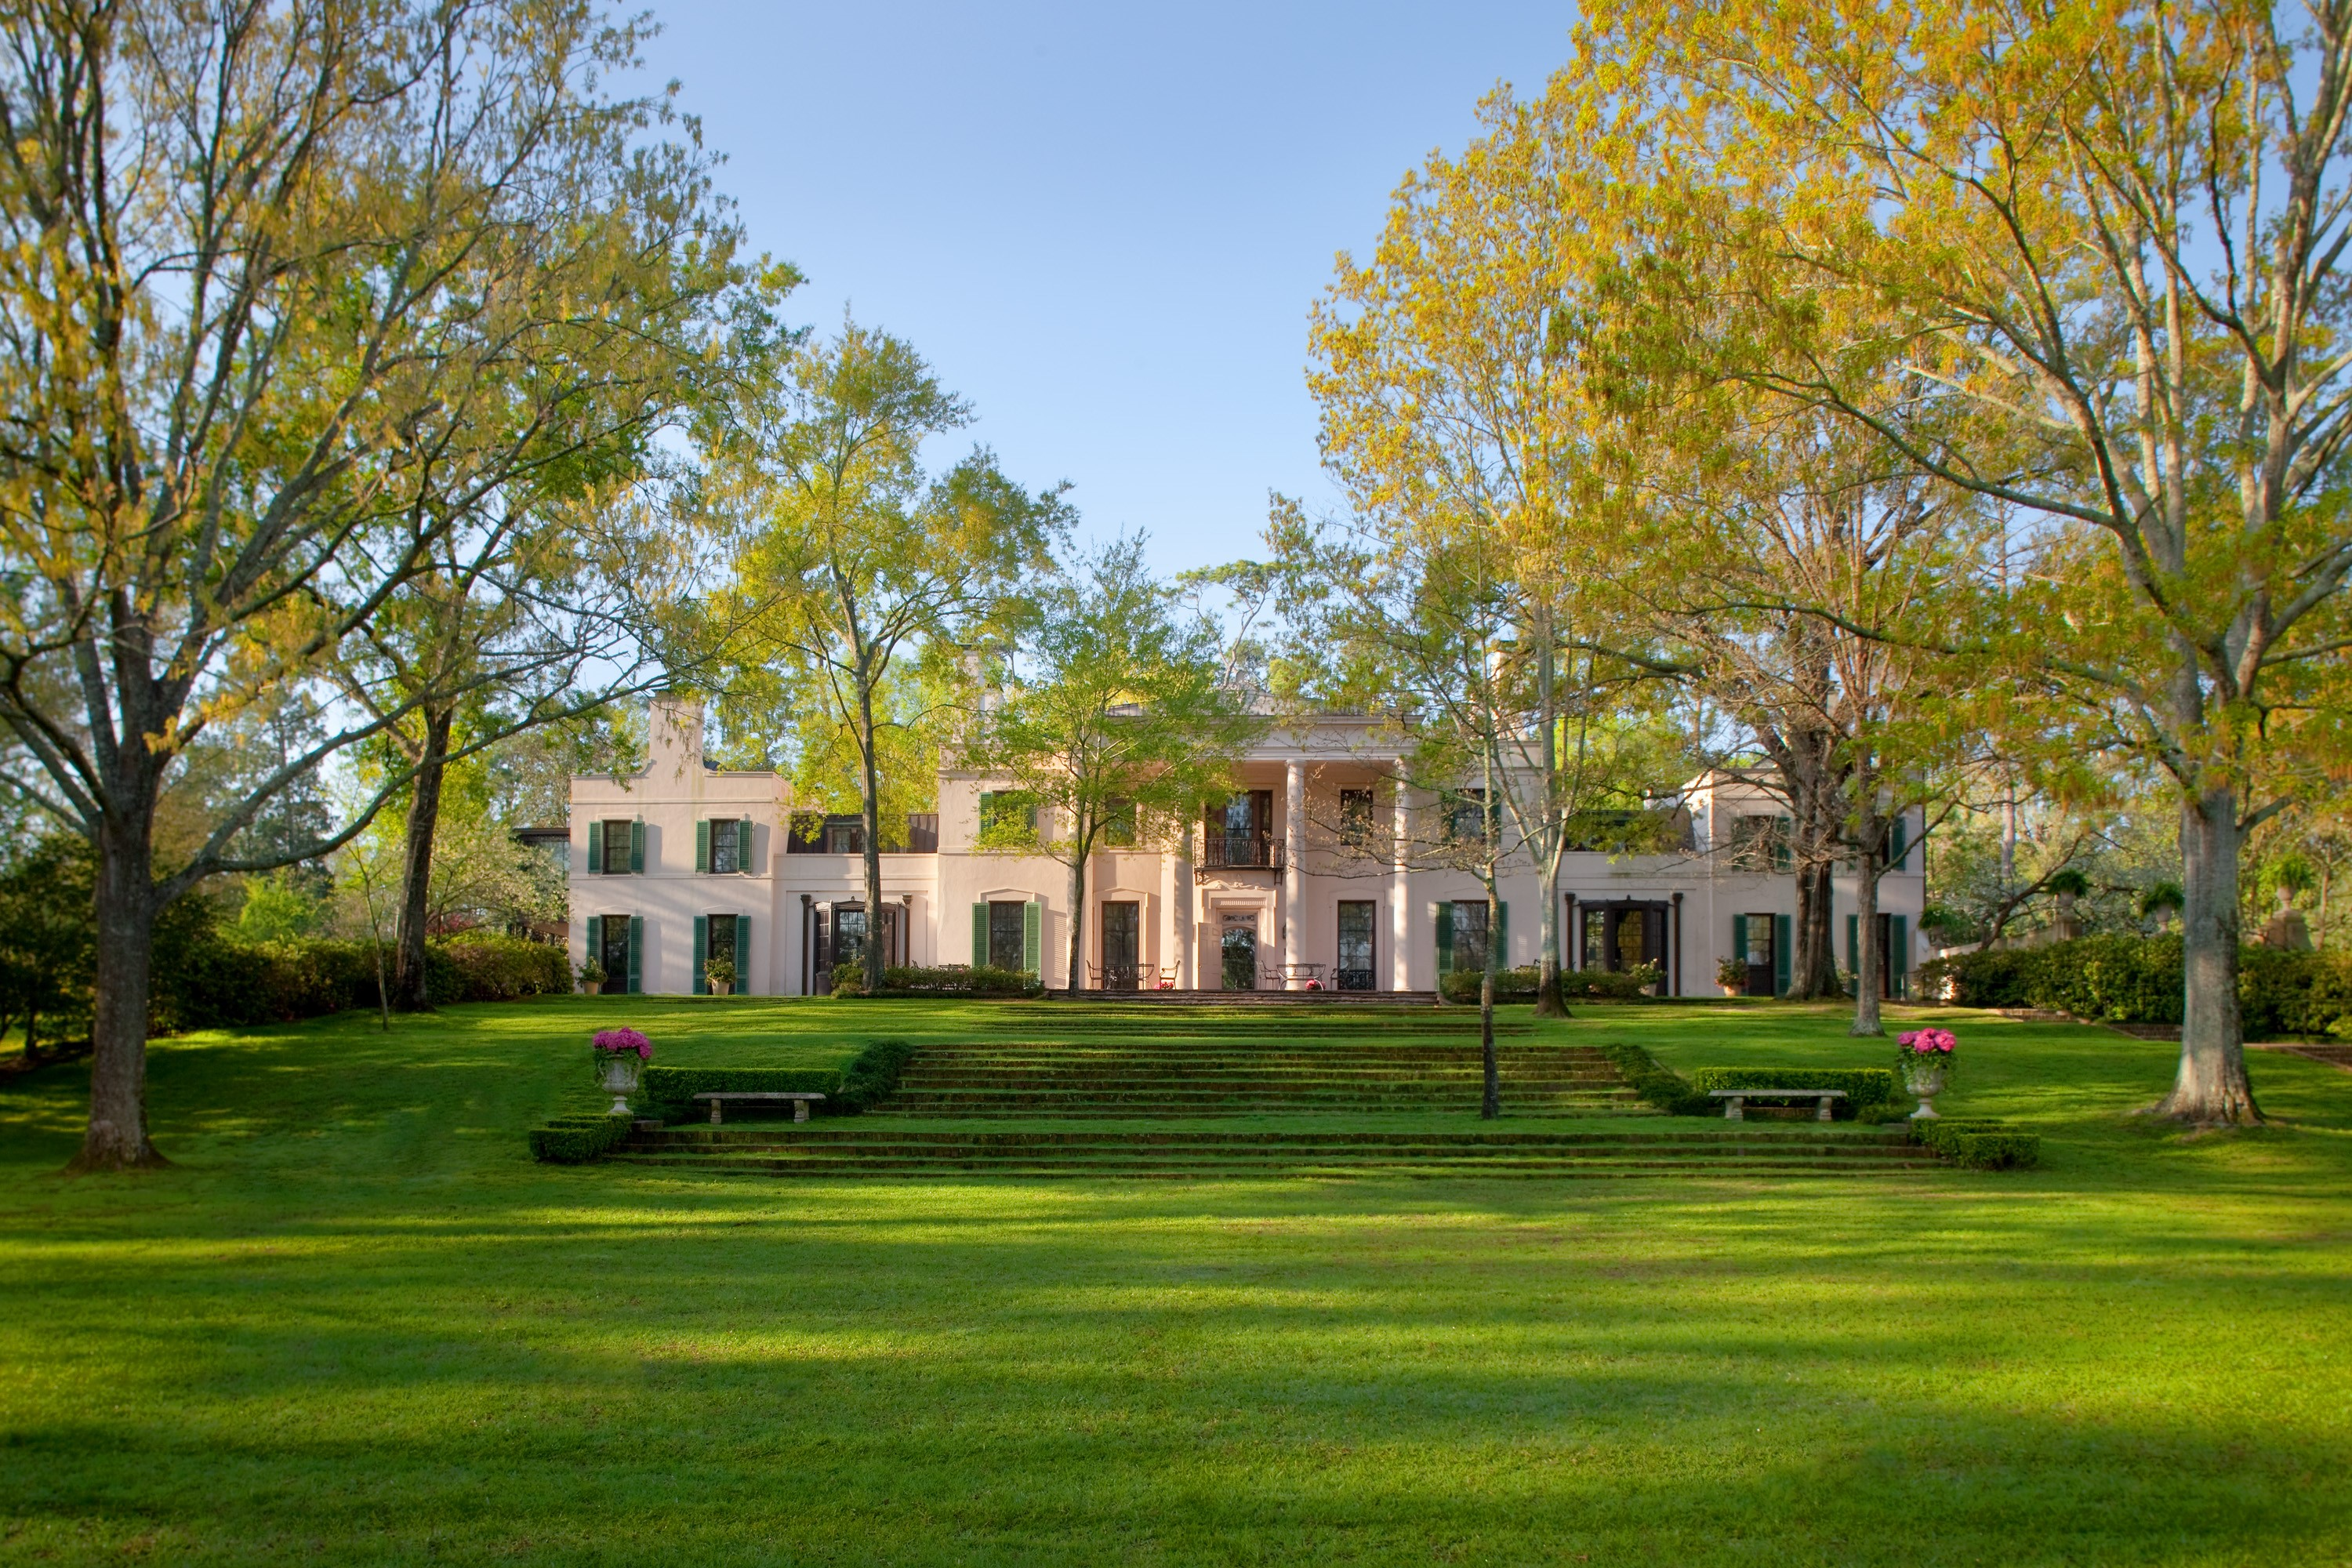 Bayou Bend exterior facade for architectural page - north